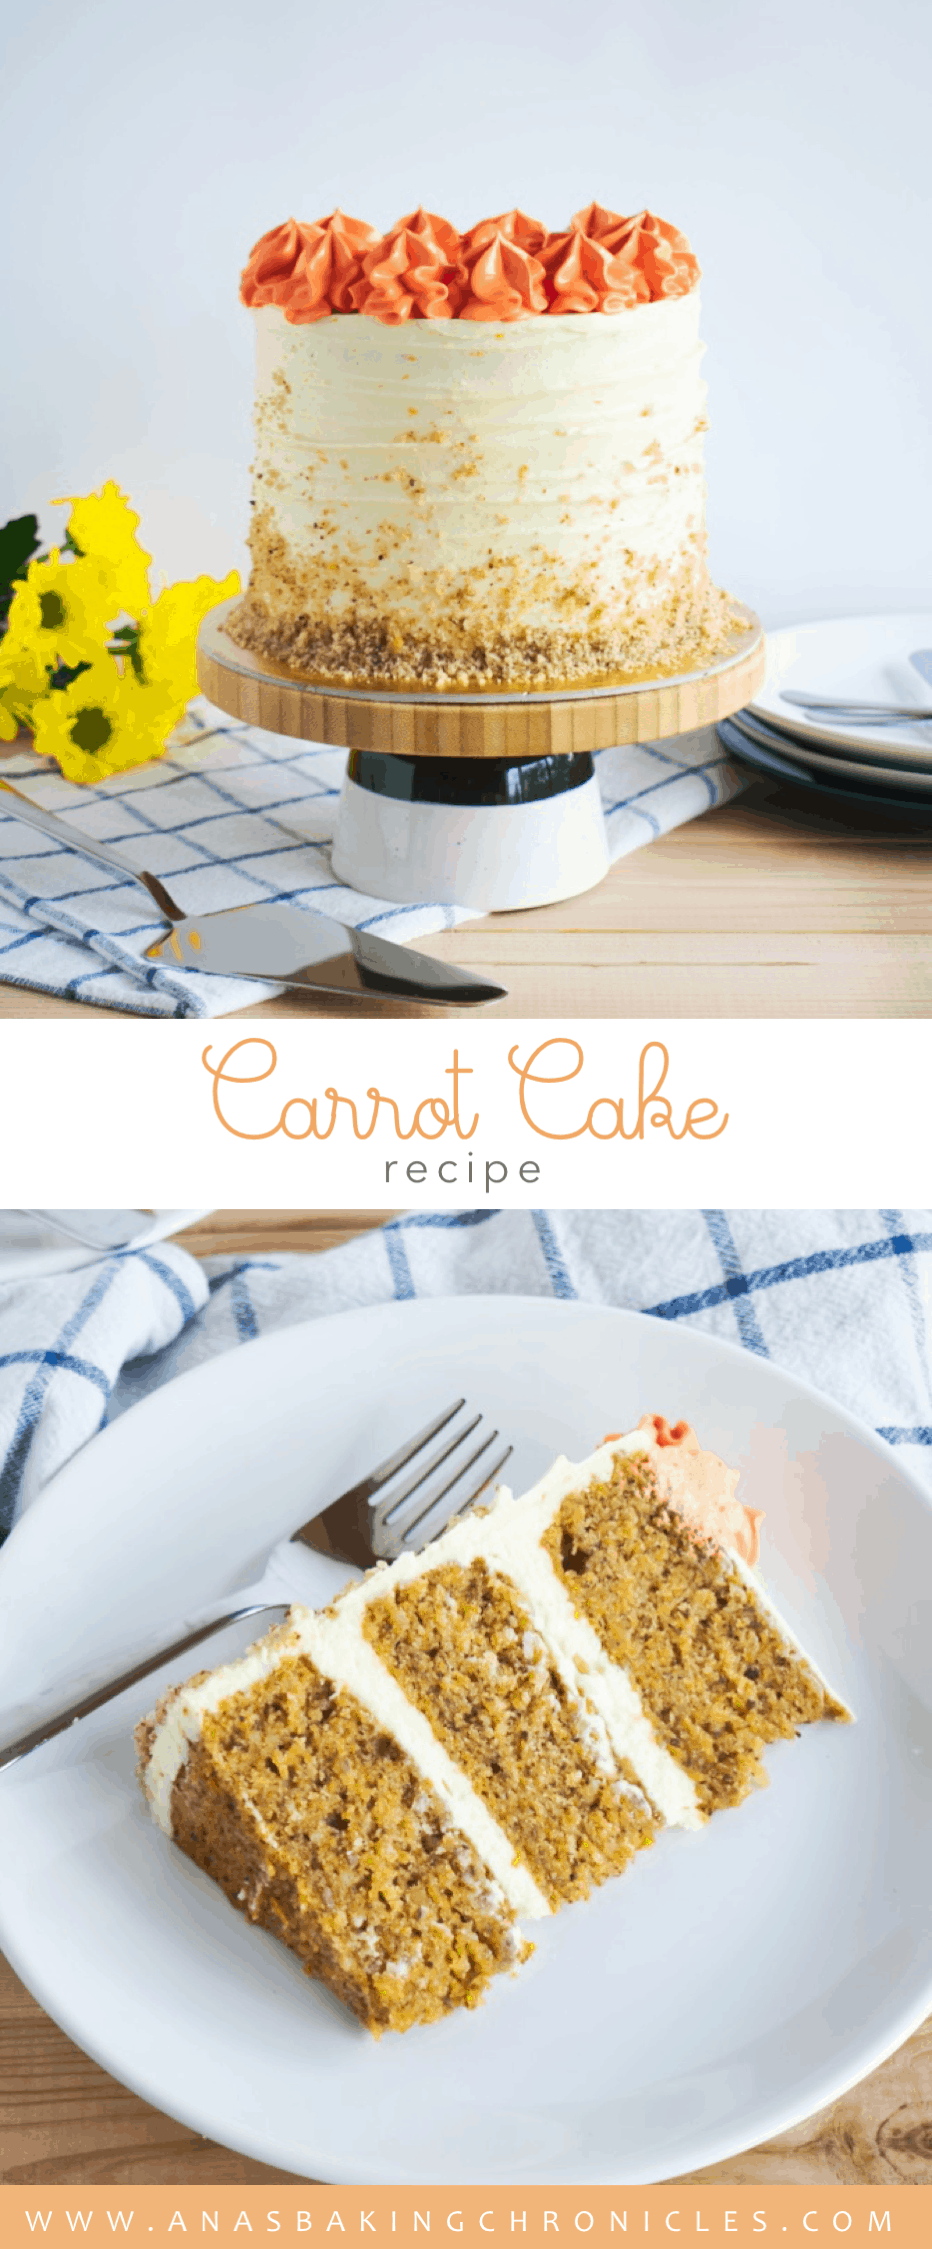 This Carrot Cake recipe is THE ONE! Paired with tangy white chocolate & orange cream cheese frosting - it represents the perfect treat throughout the whole year!⎪www.anasbakingchronicles.com